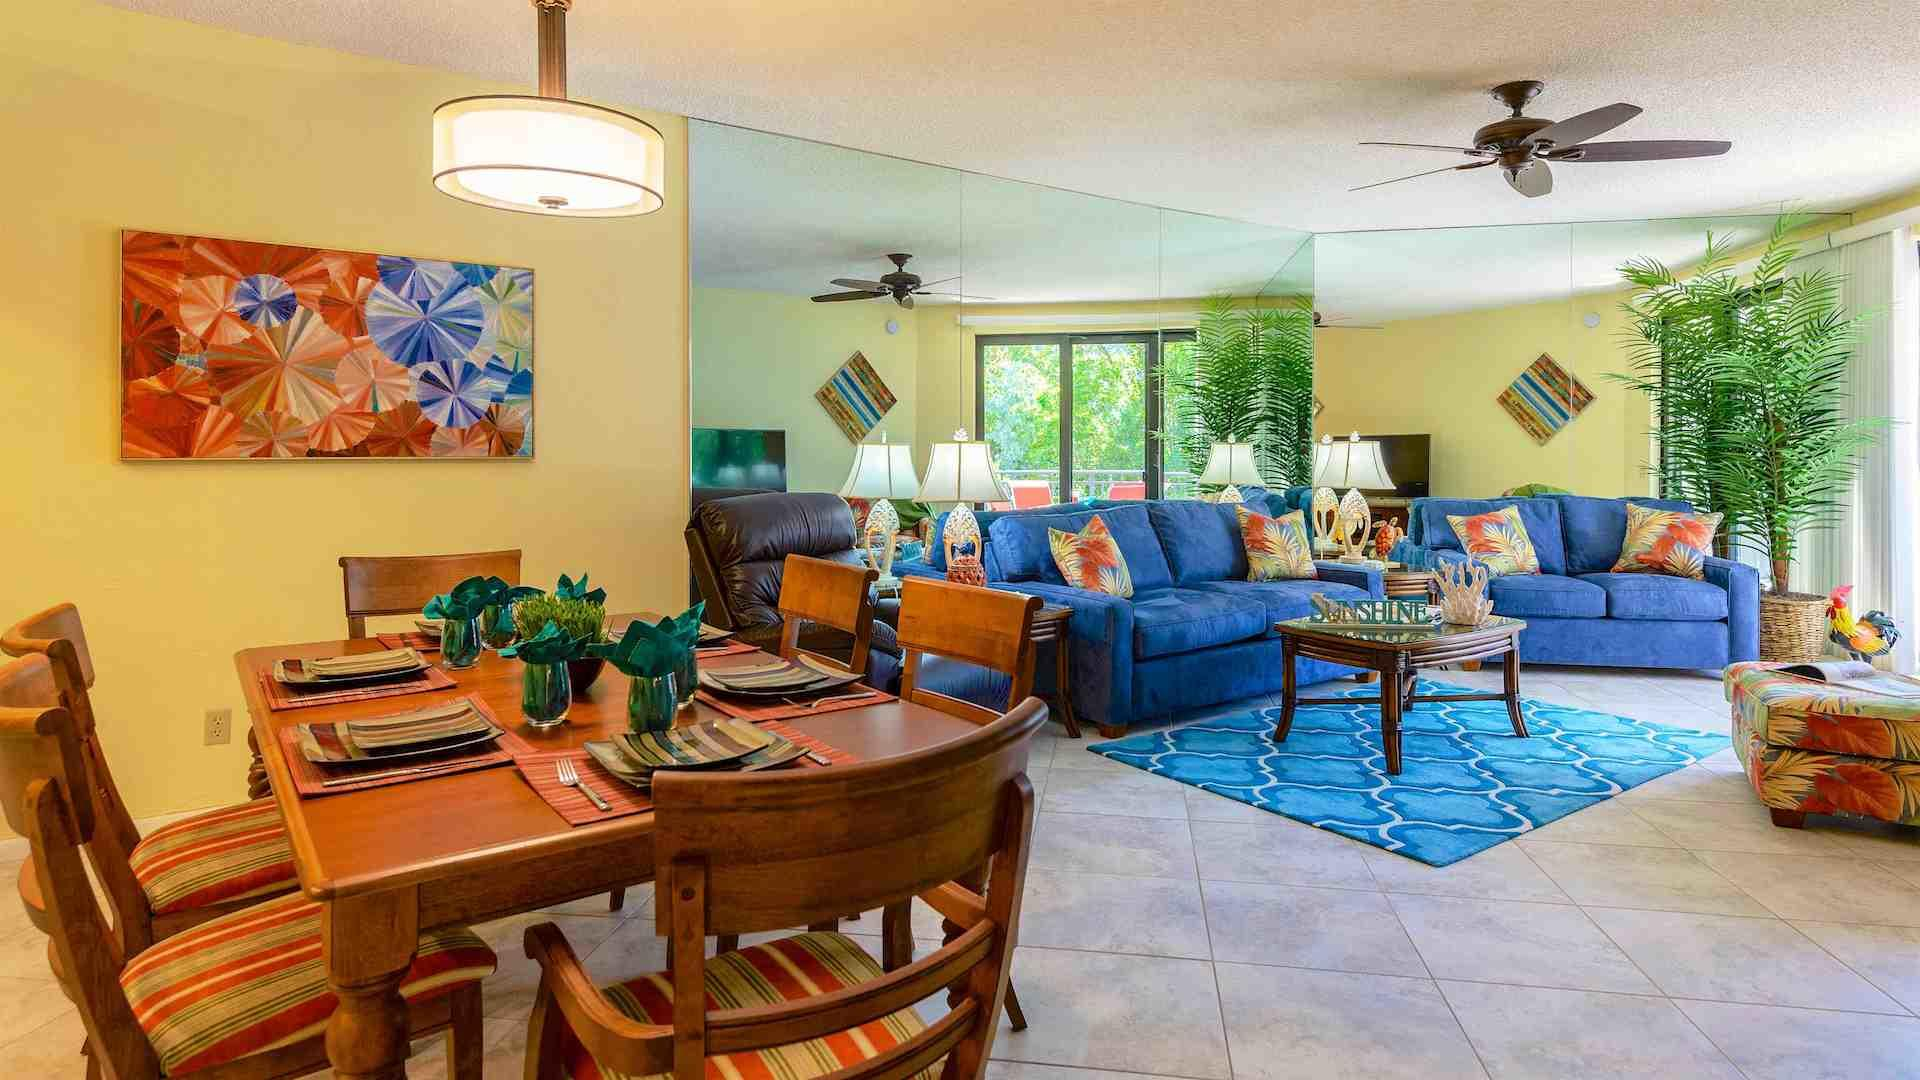 The spacious open design is deal for entertaining...